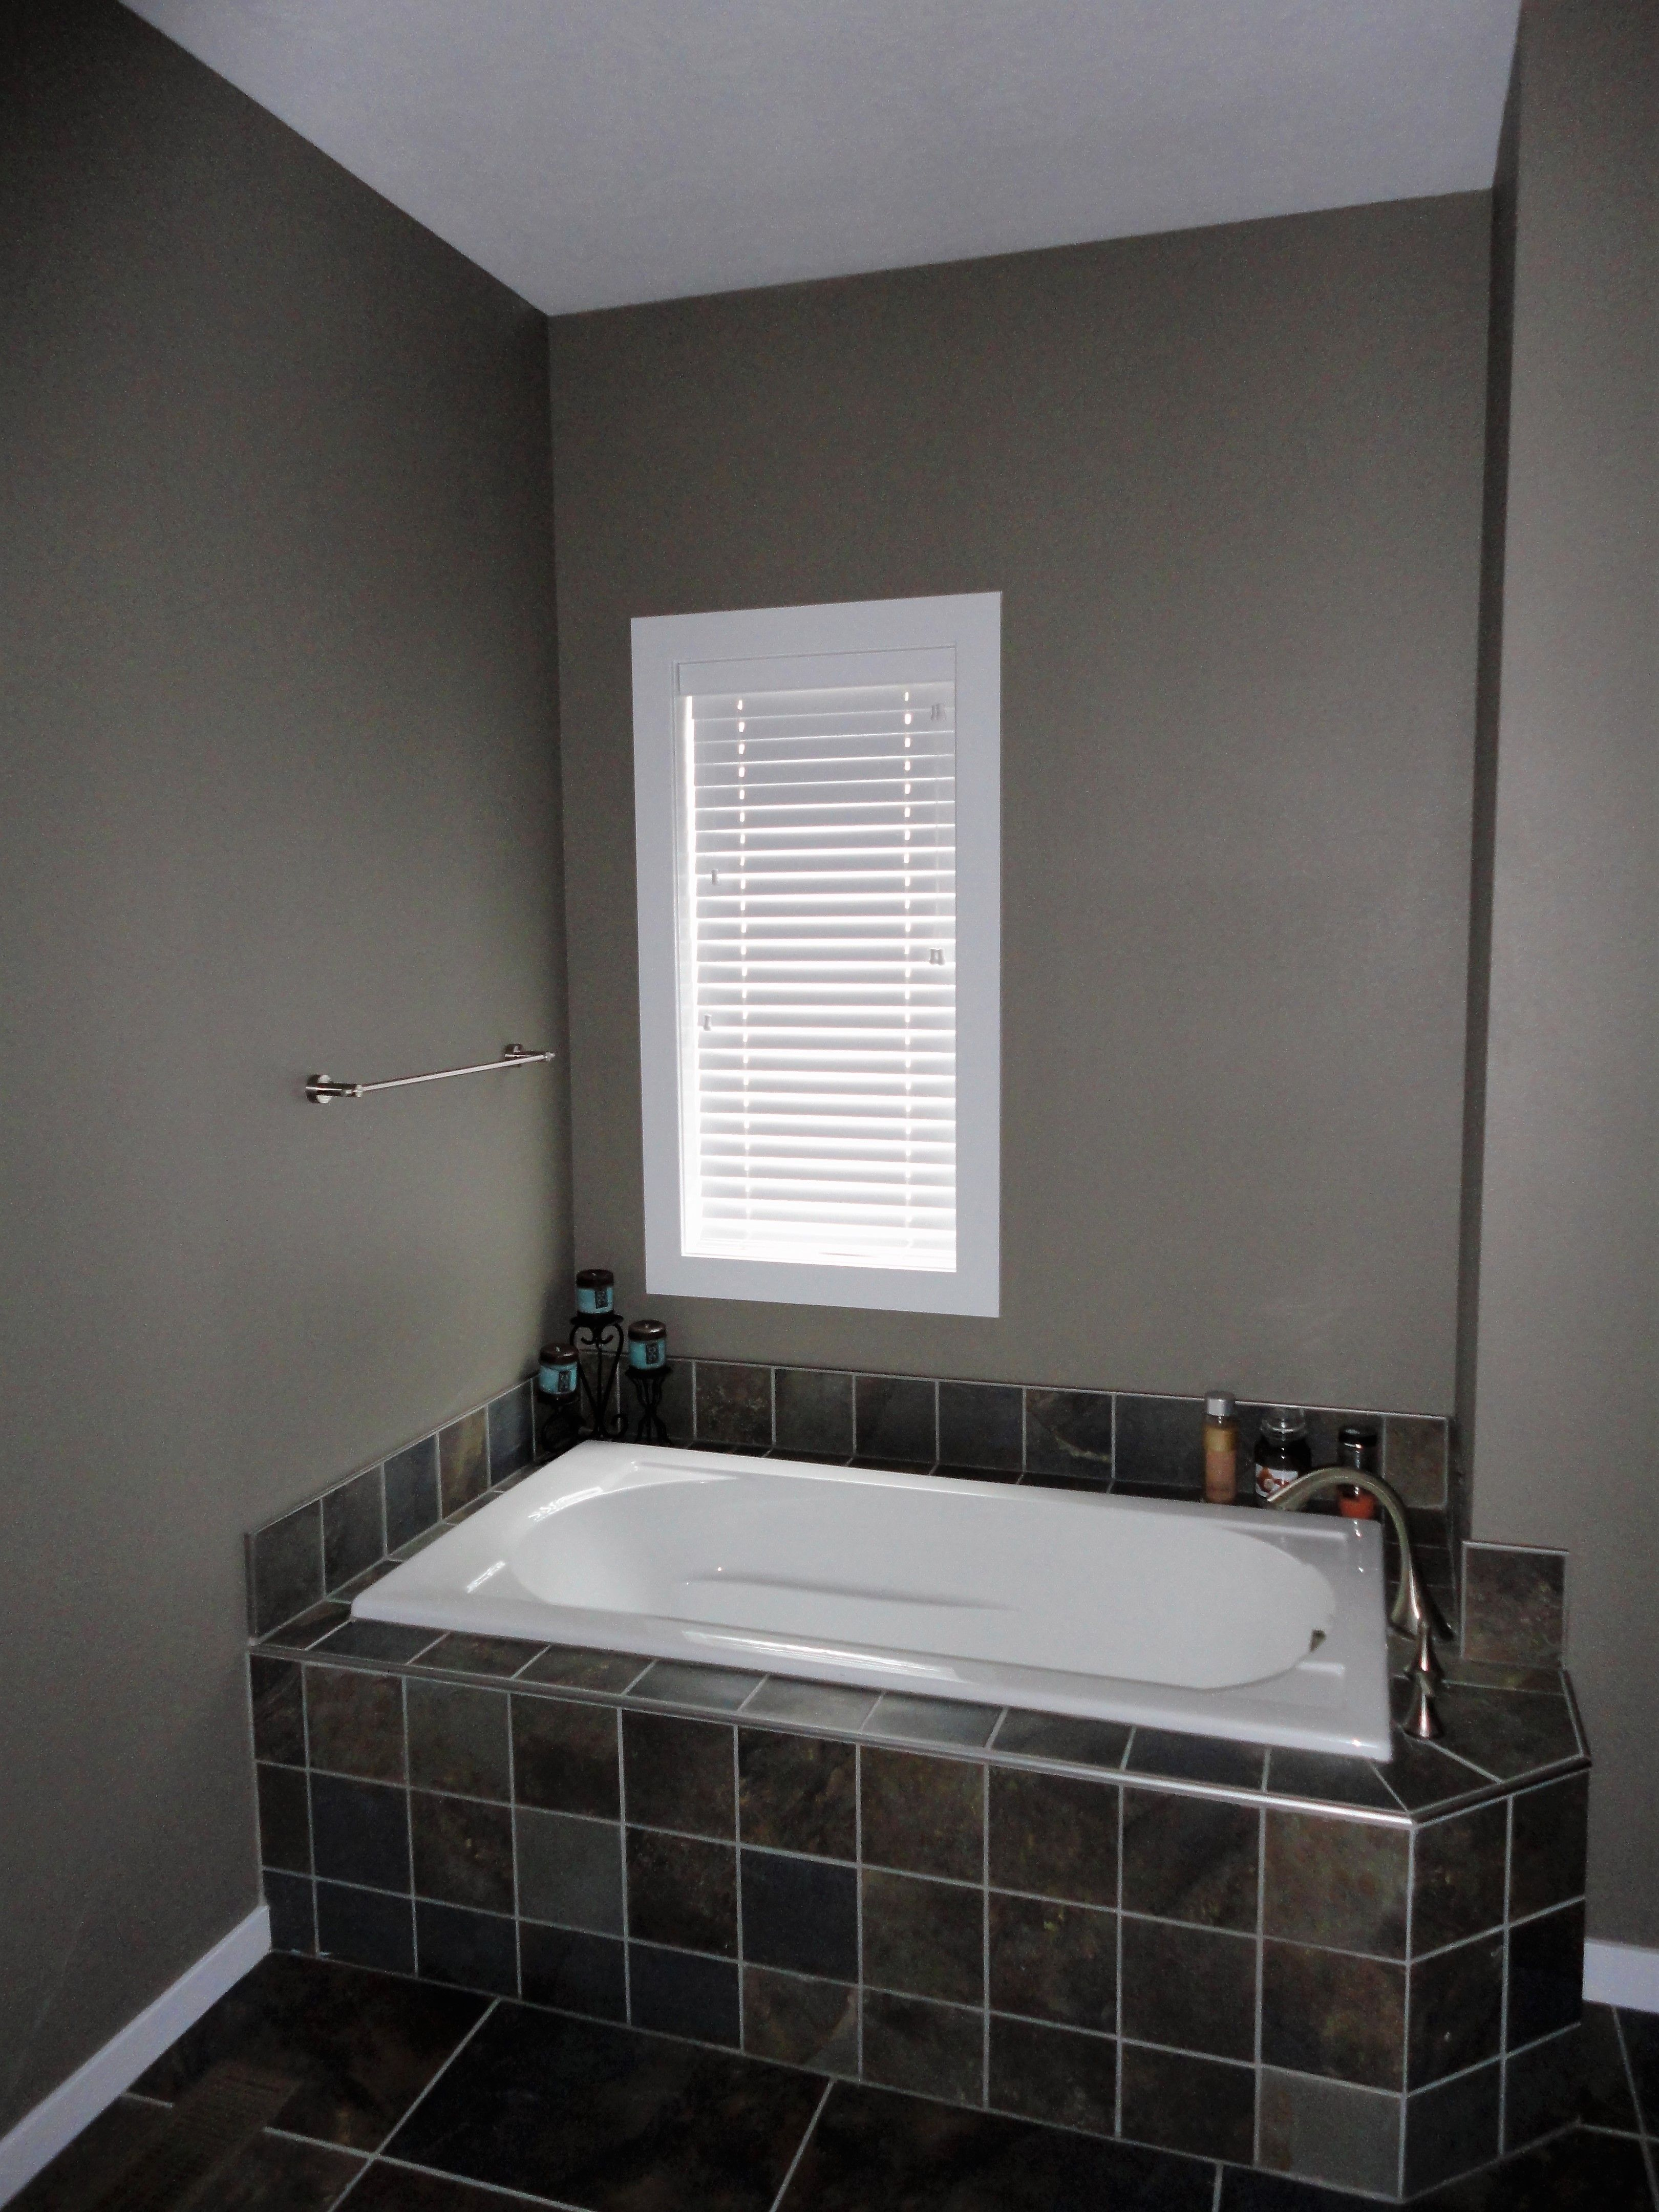 Window coverings to block sun  pin by budget blinds of sioux falls on wood blinds  pinterest